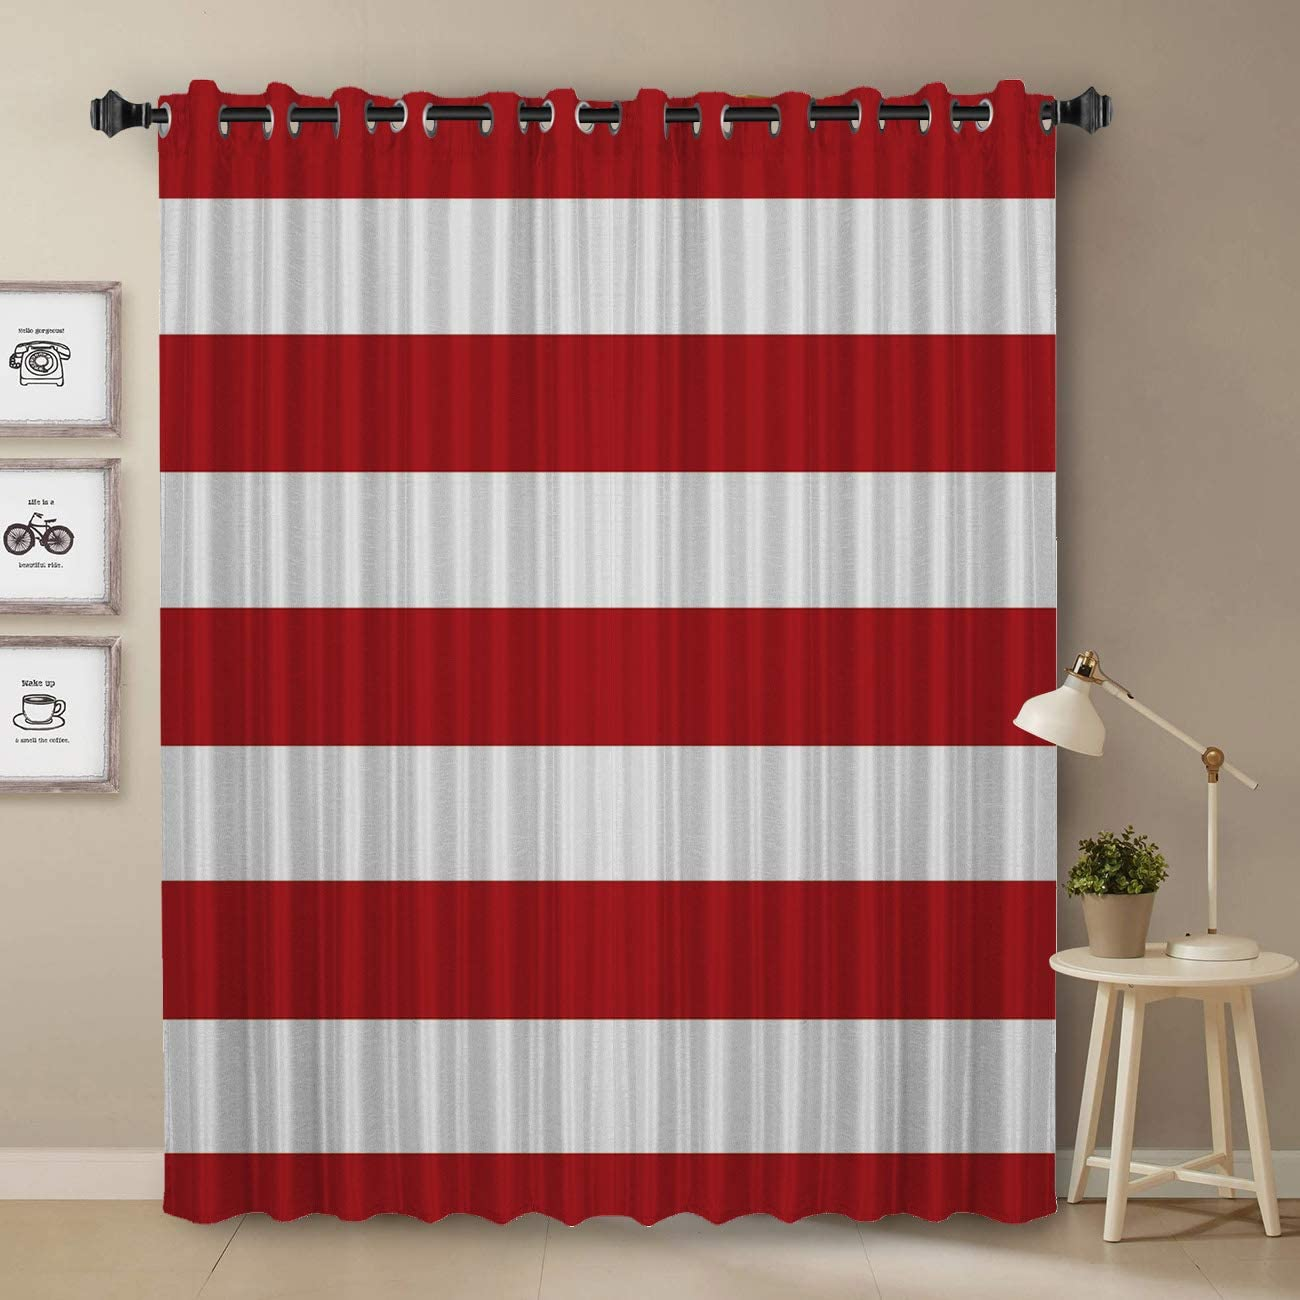 T H Home Darkening Blackout Curtain for Bedroom – 90 inch Long Window Treatment Curtain Drapes Modern Art Design for Living Room- Stripe Window Panel Red White Stripes Pattern